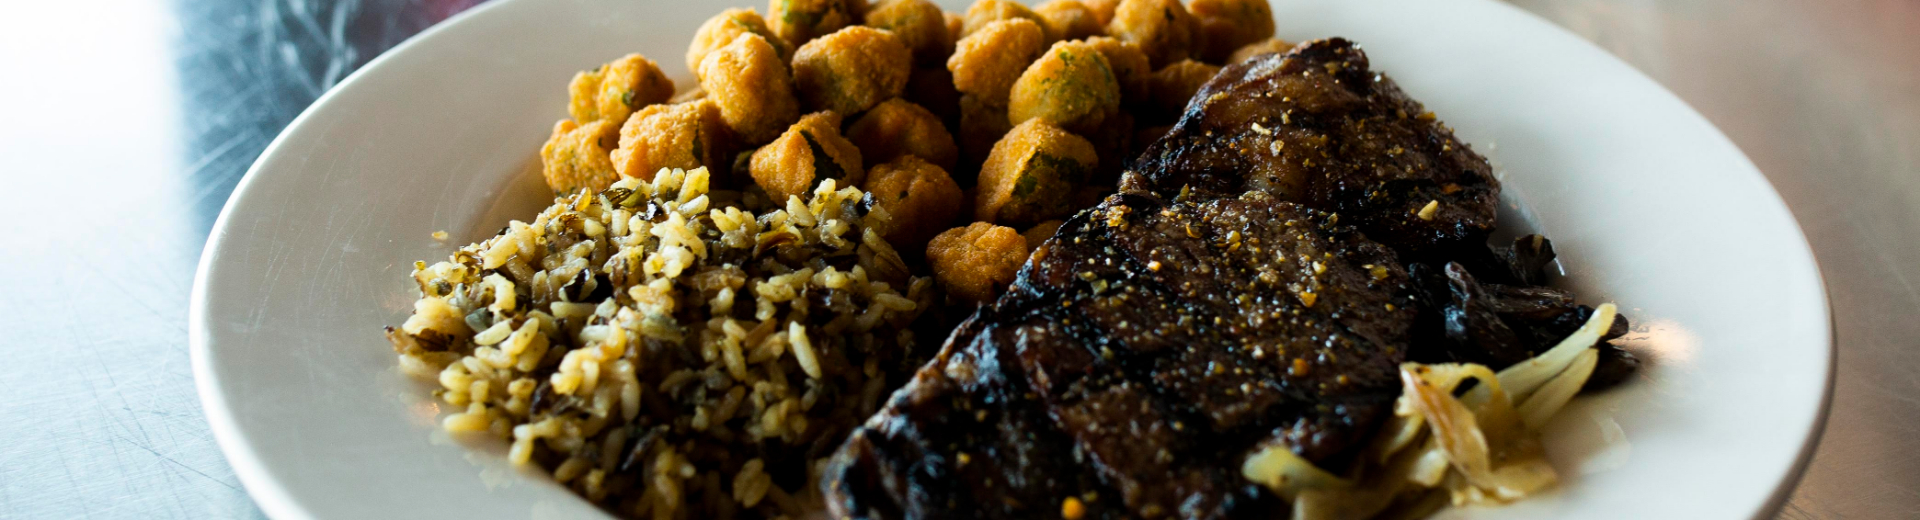 A plate of steak, rice and fried okra, prepared by House Divided